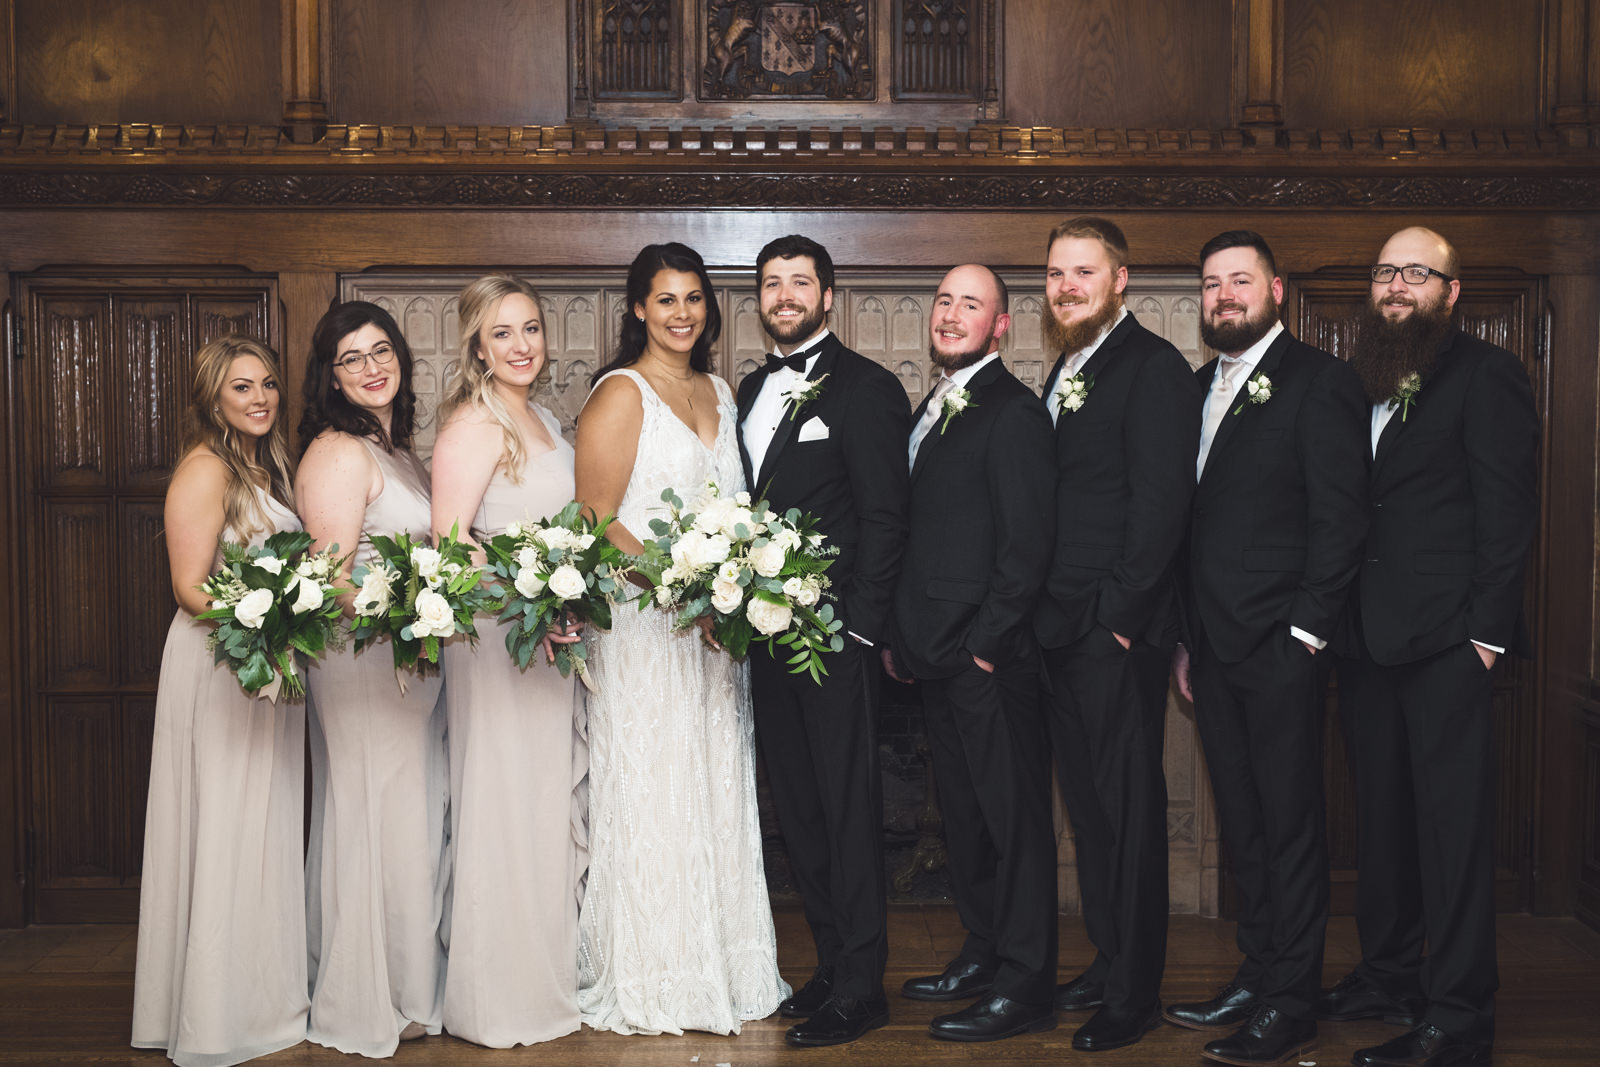 rollins-mansion-1078-wedding-photographer-des-moines-iowa-m-c.jpg